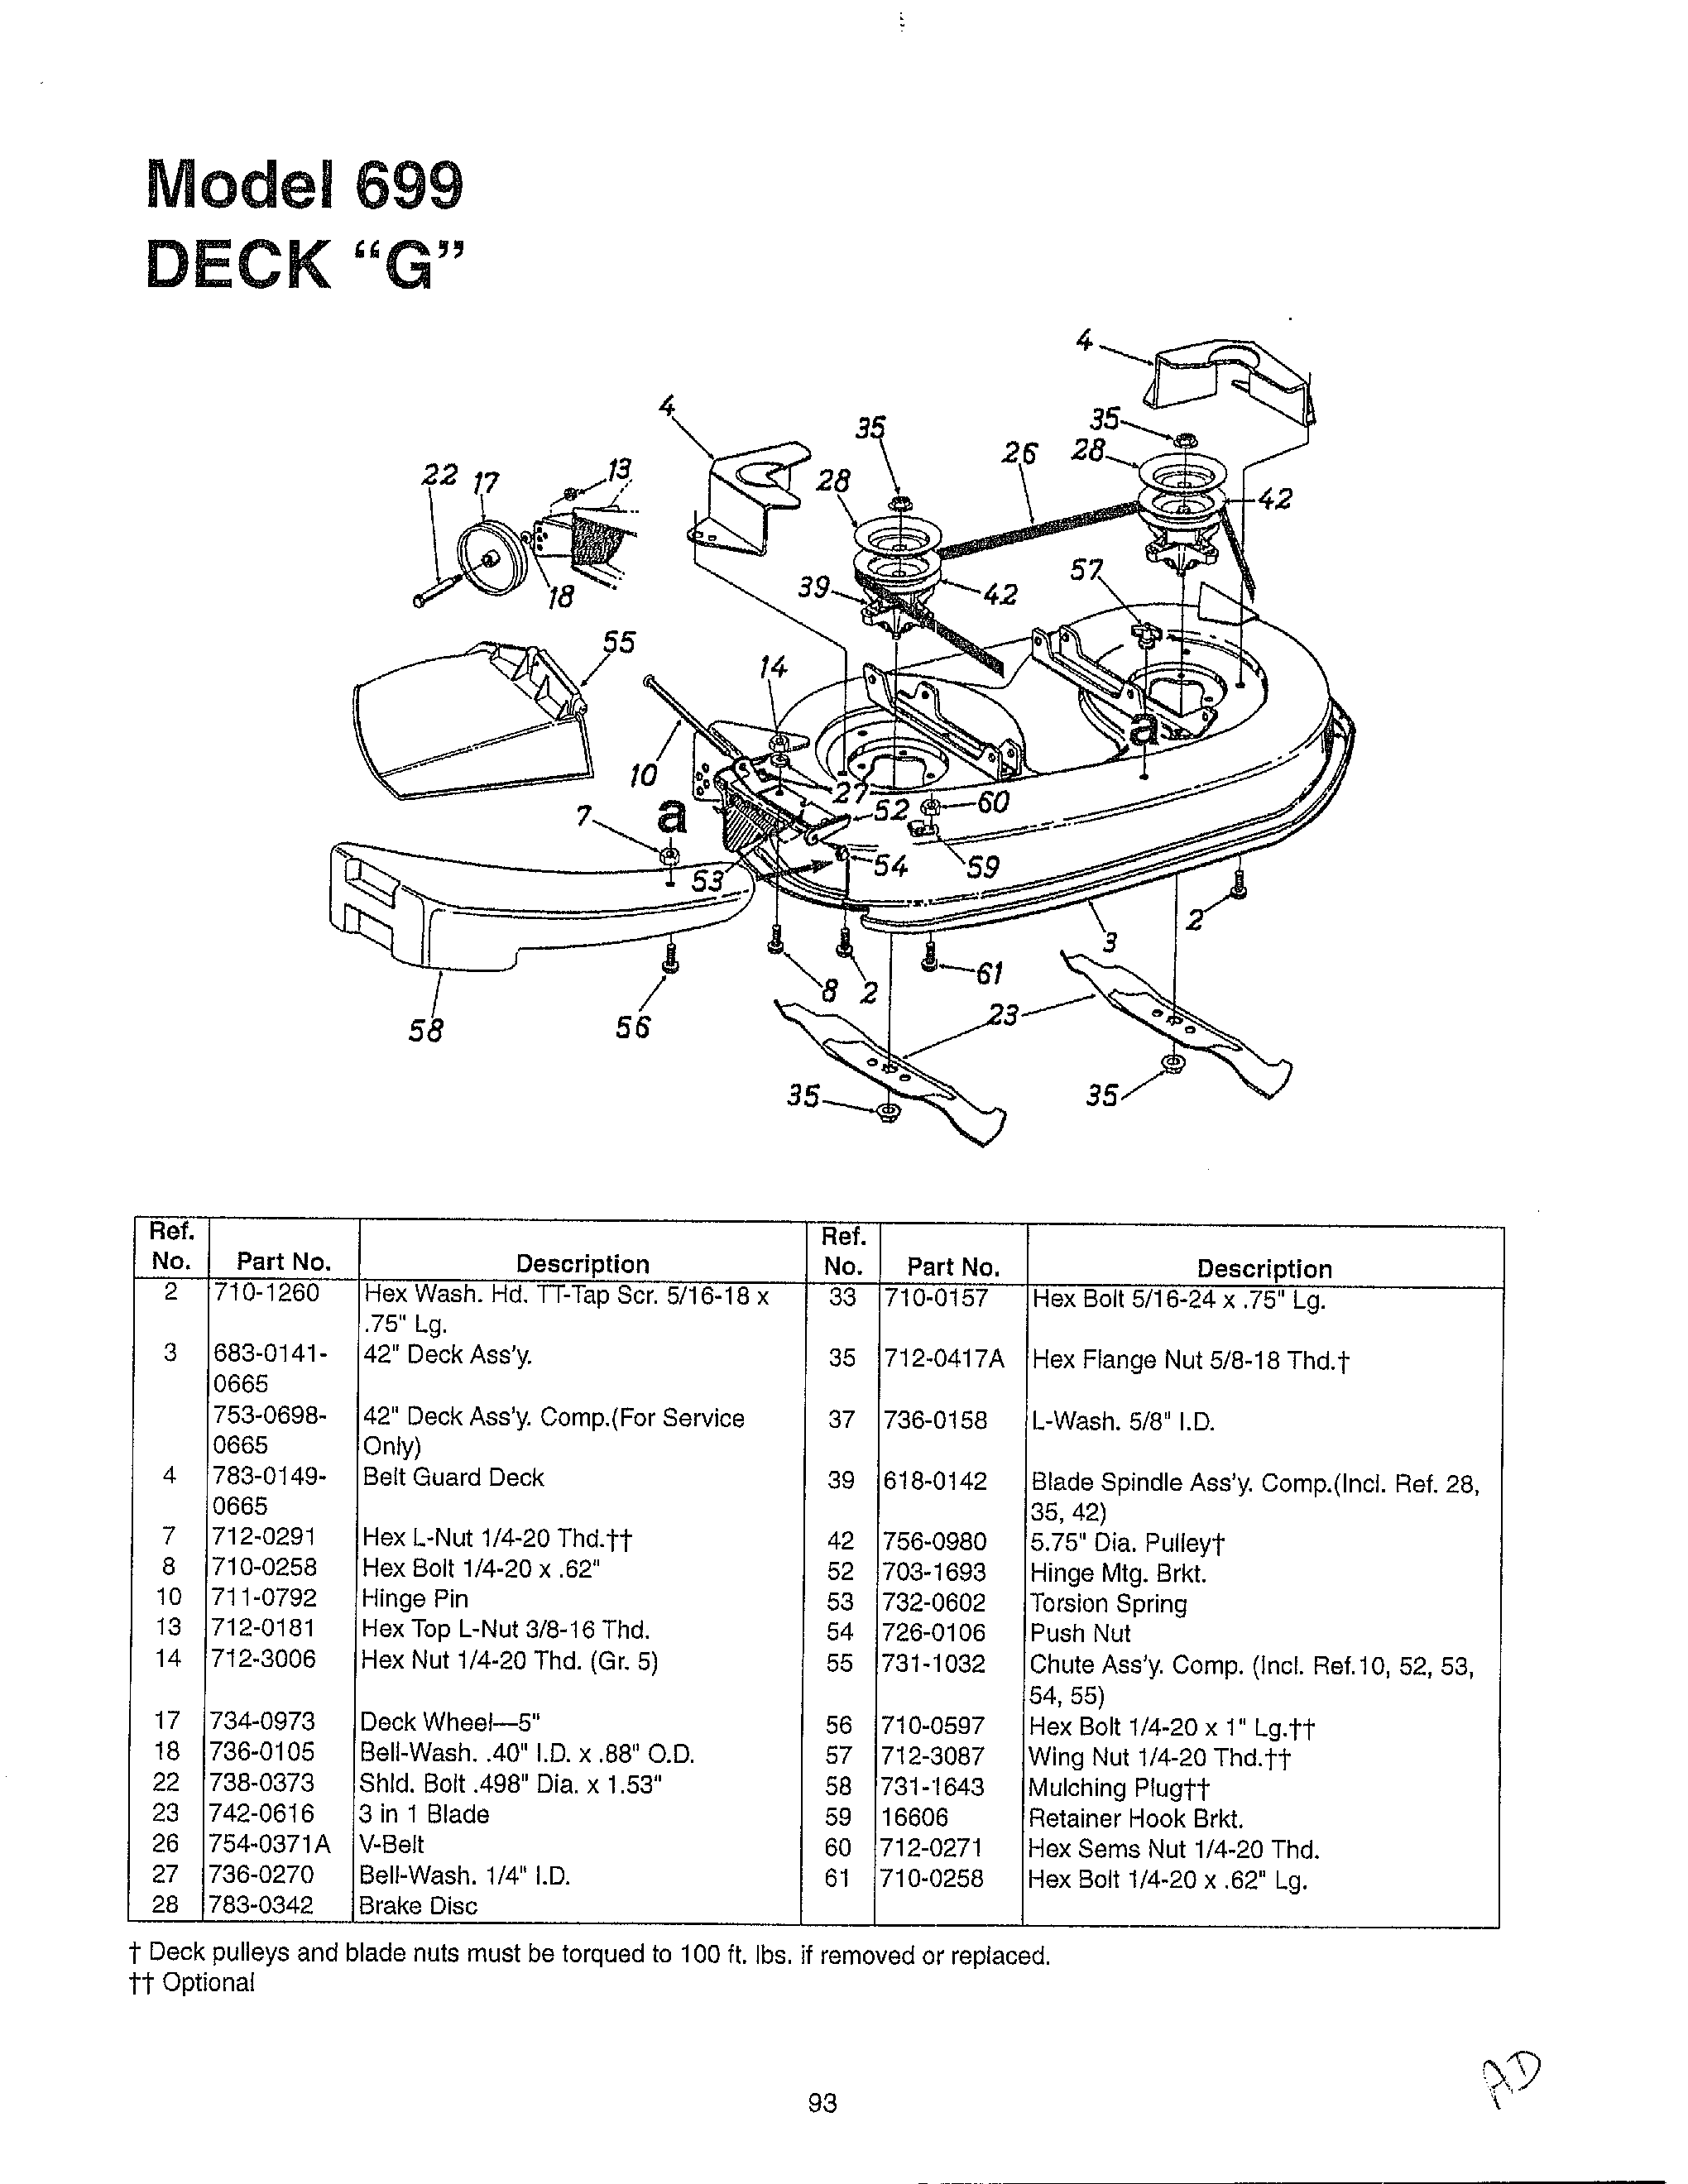 ENGINE/ELECTRICAL Page 10 Diagram & Parts List for Model